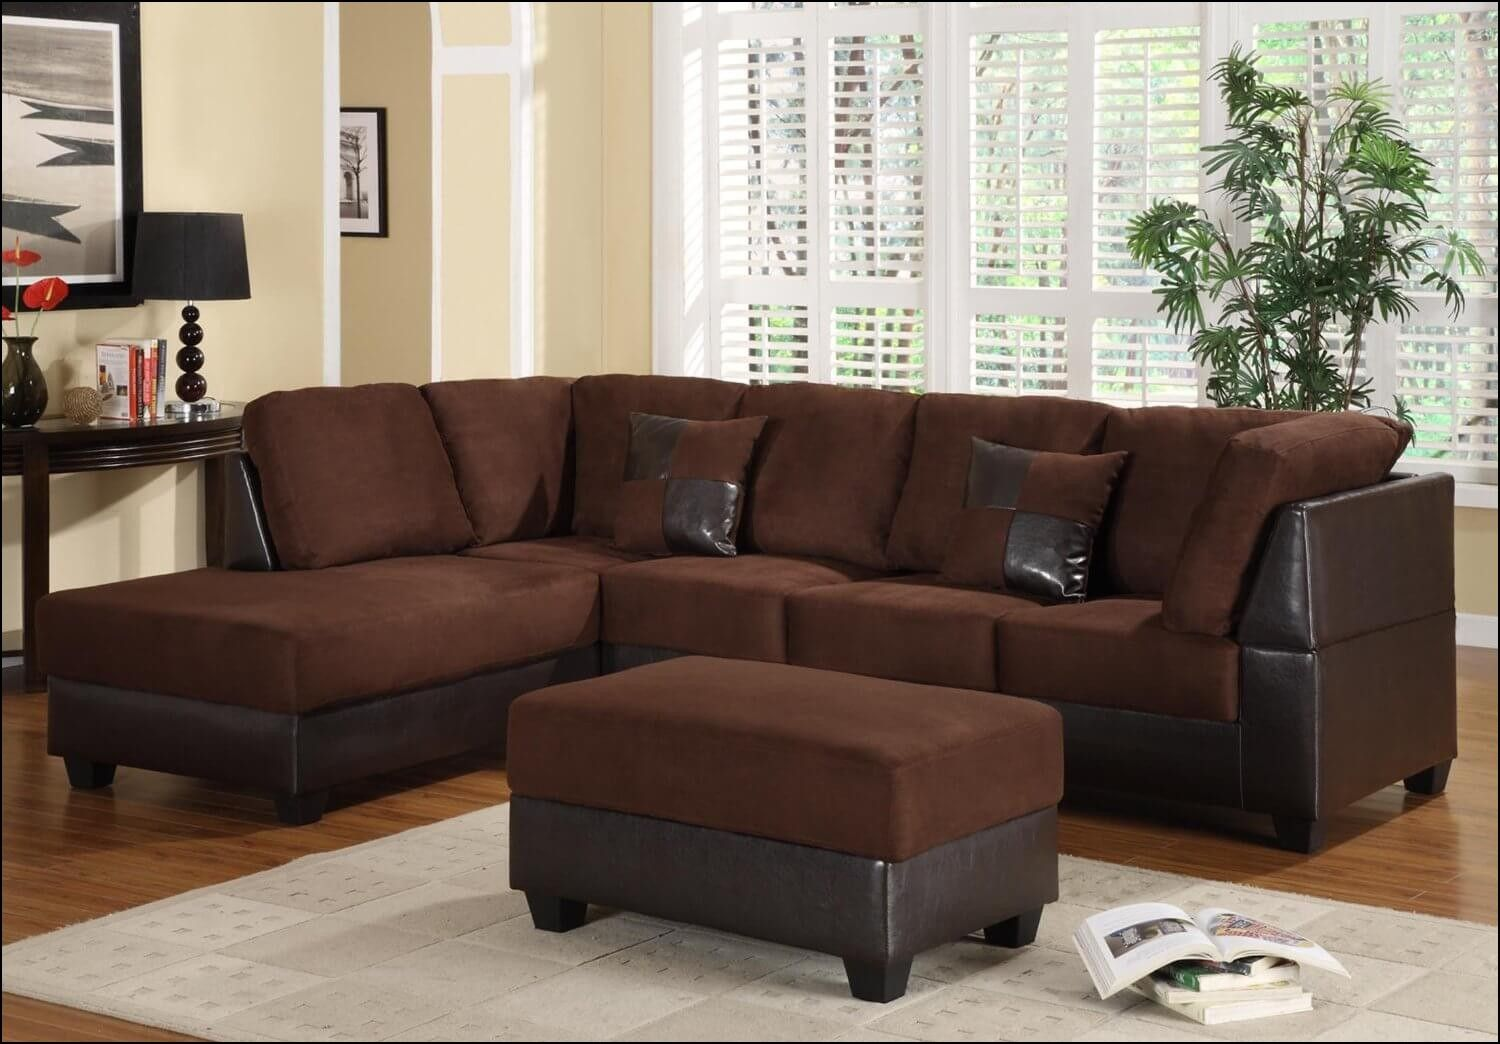 nice cheap sofas under 200 in cheap sectional sofas under 200 15 rh r750explorer me Cheap Recliners Under 100 Cheap Recliner Chairs Under 200